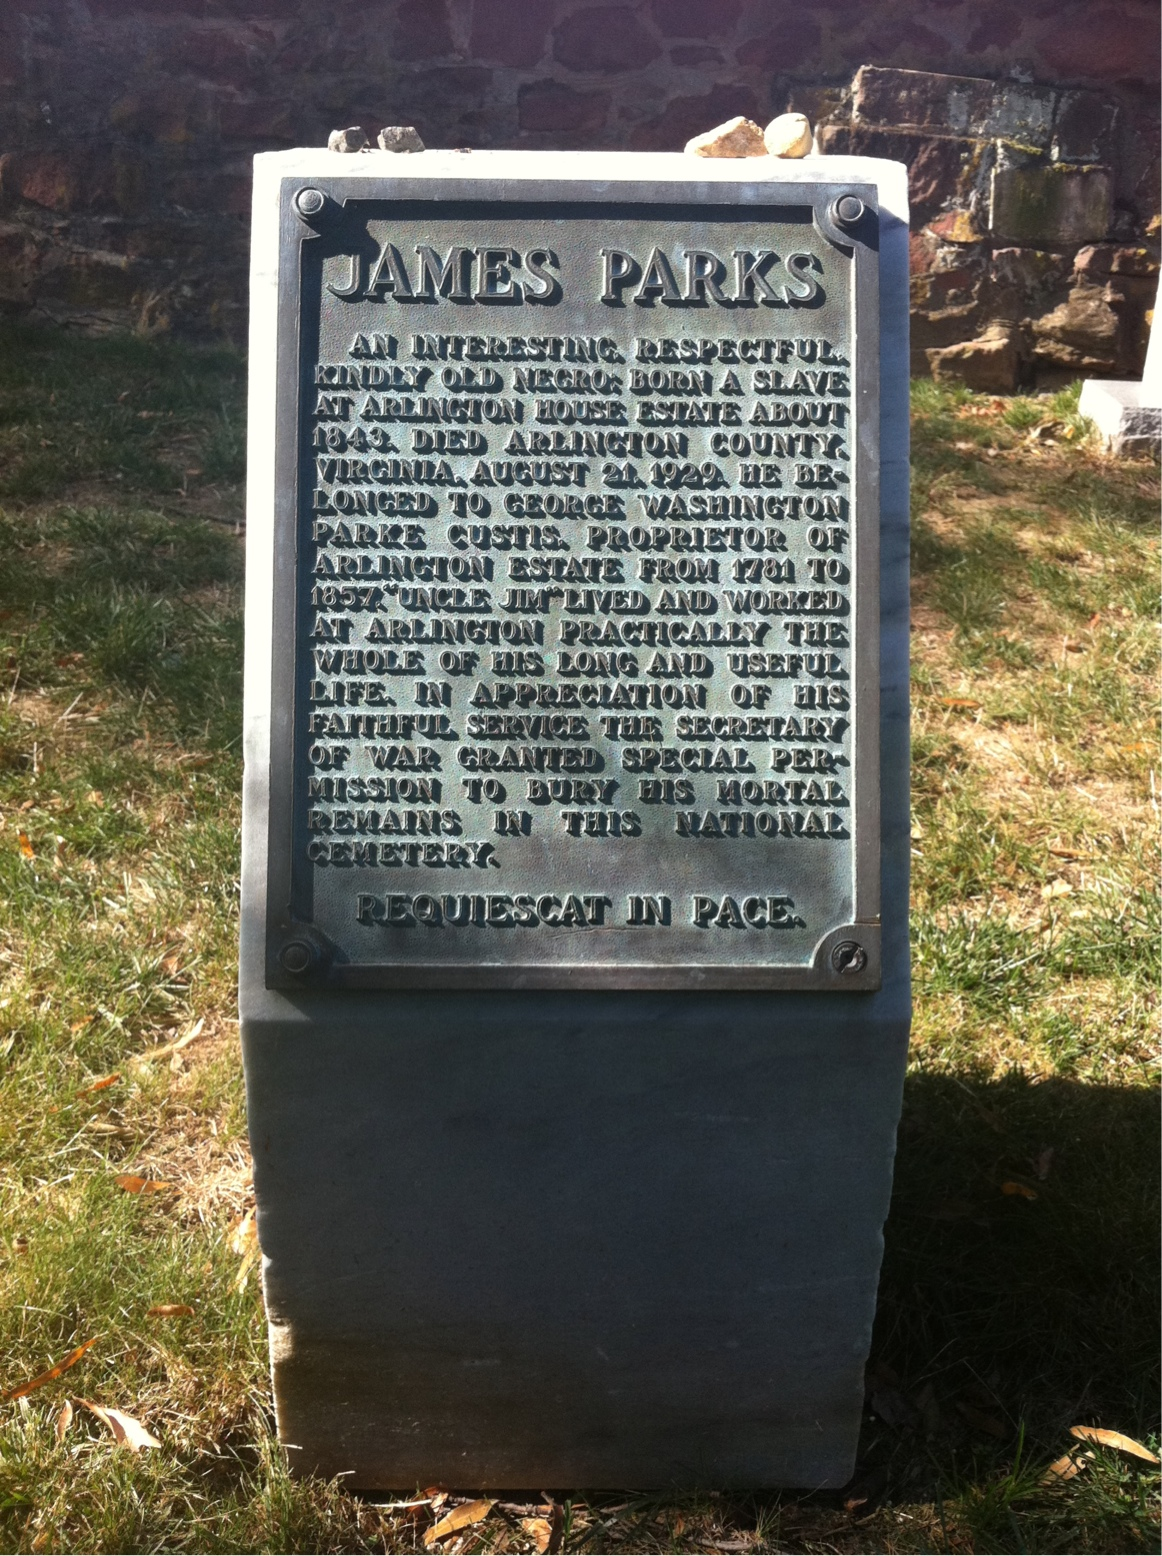 Gravesite of James Parks, a former slave and the only person buried at Arlington National Cemetery who was born on the property